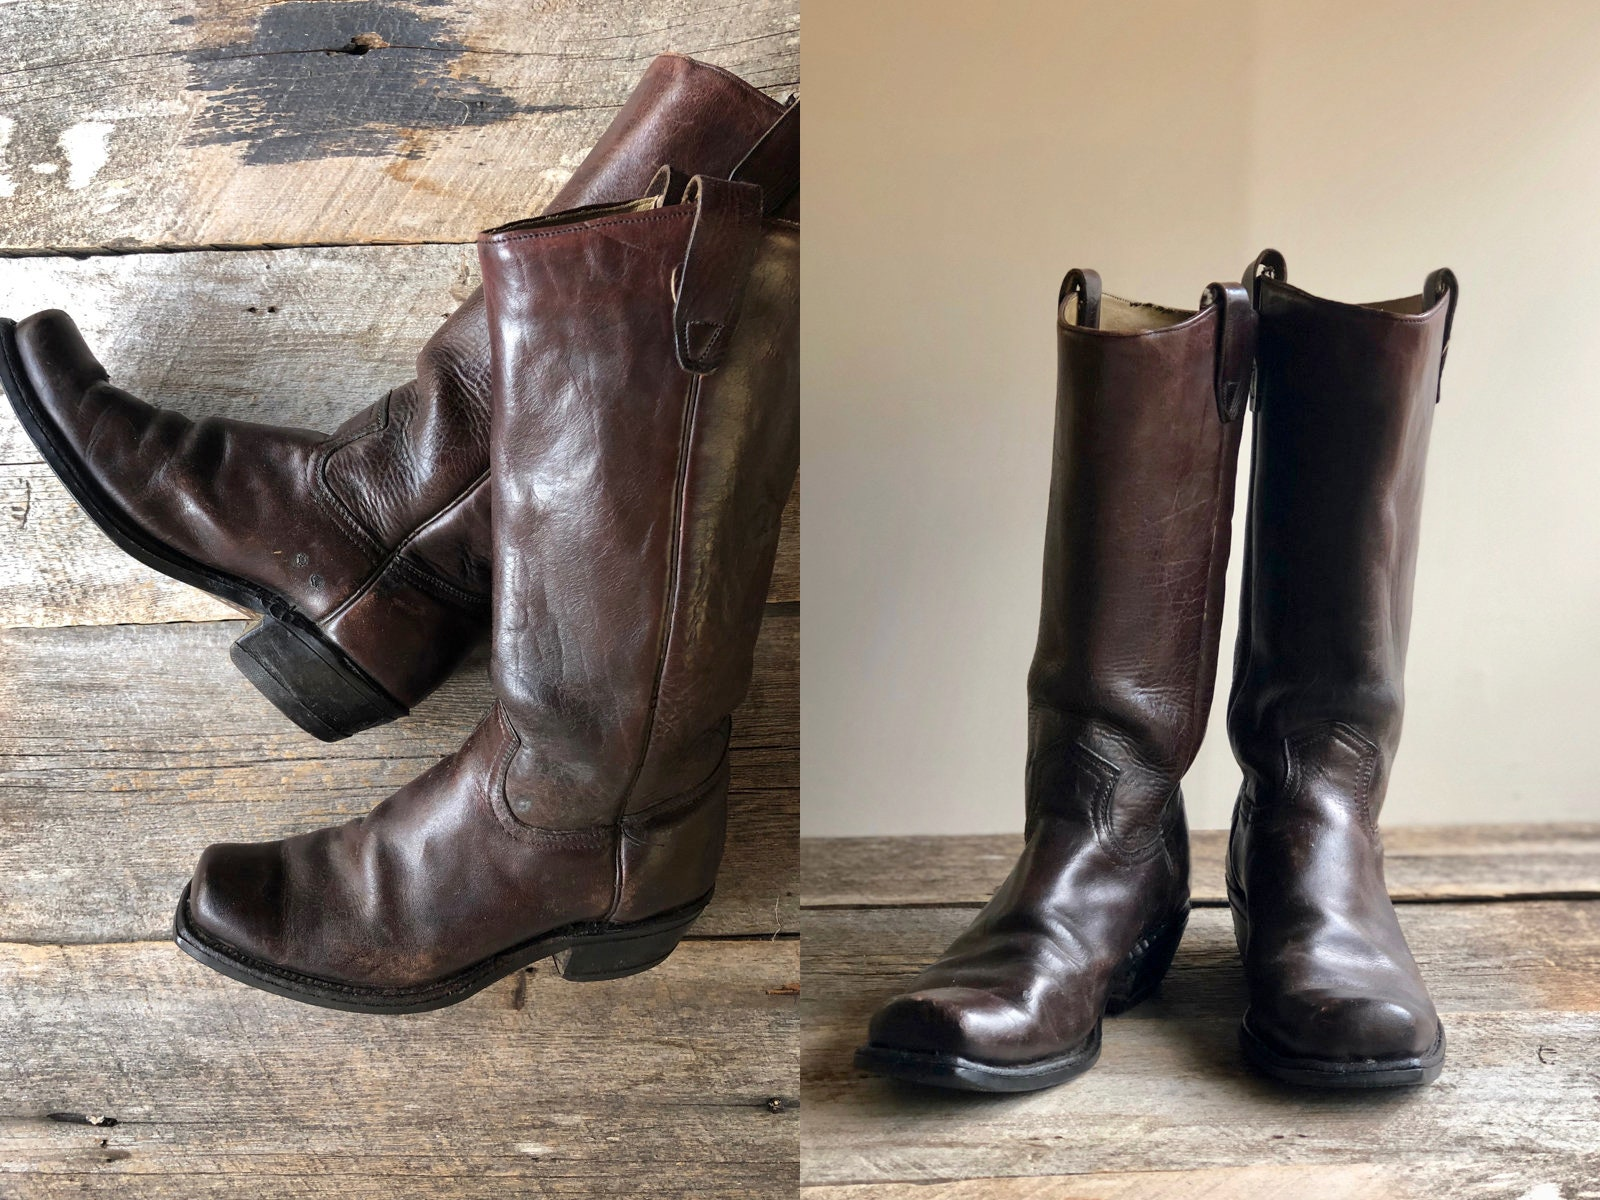 d9bc552255339 Vintage 70s ENGINEER MOTORCYCLE Boots . Brown Leather Square Toe Biker  Boots // Size 8.5 womens Sz 8 1/2 Sz 39